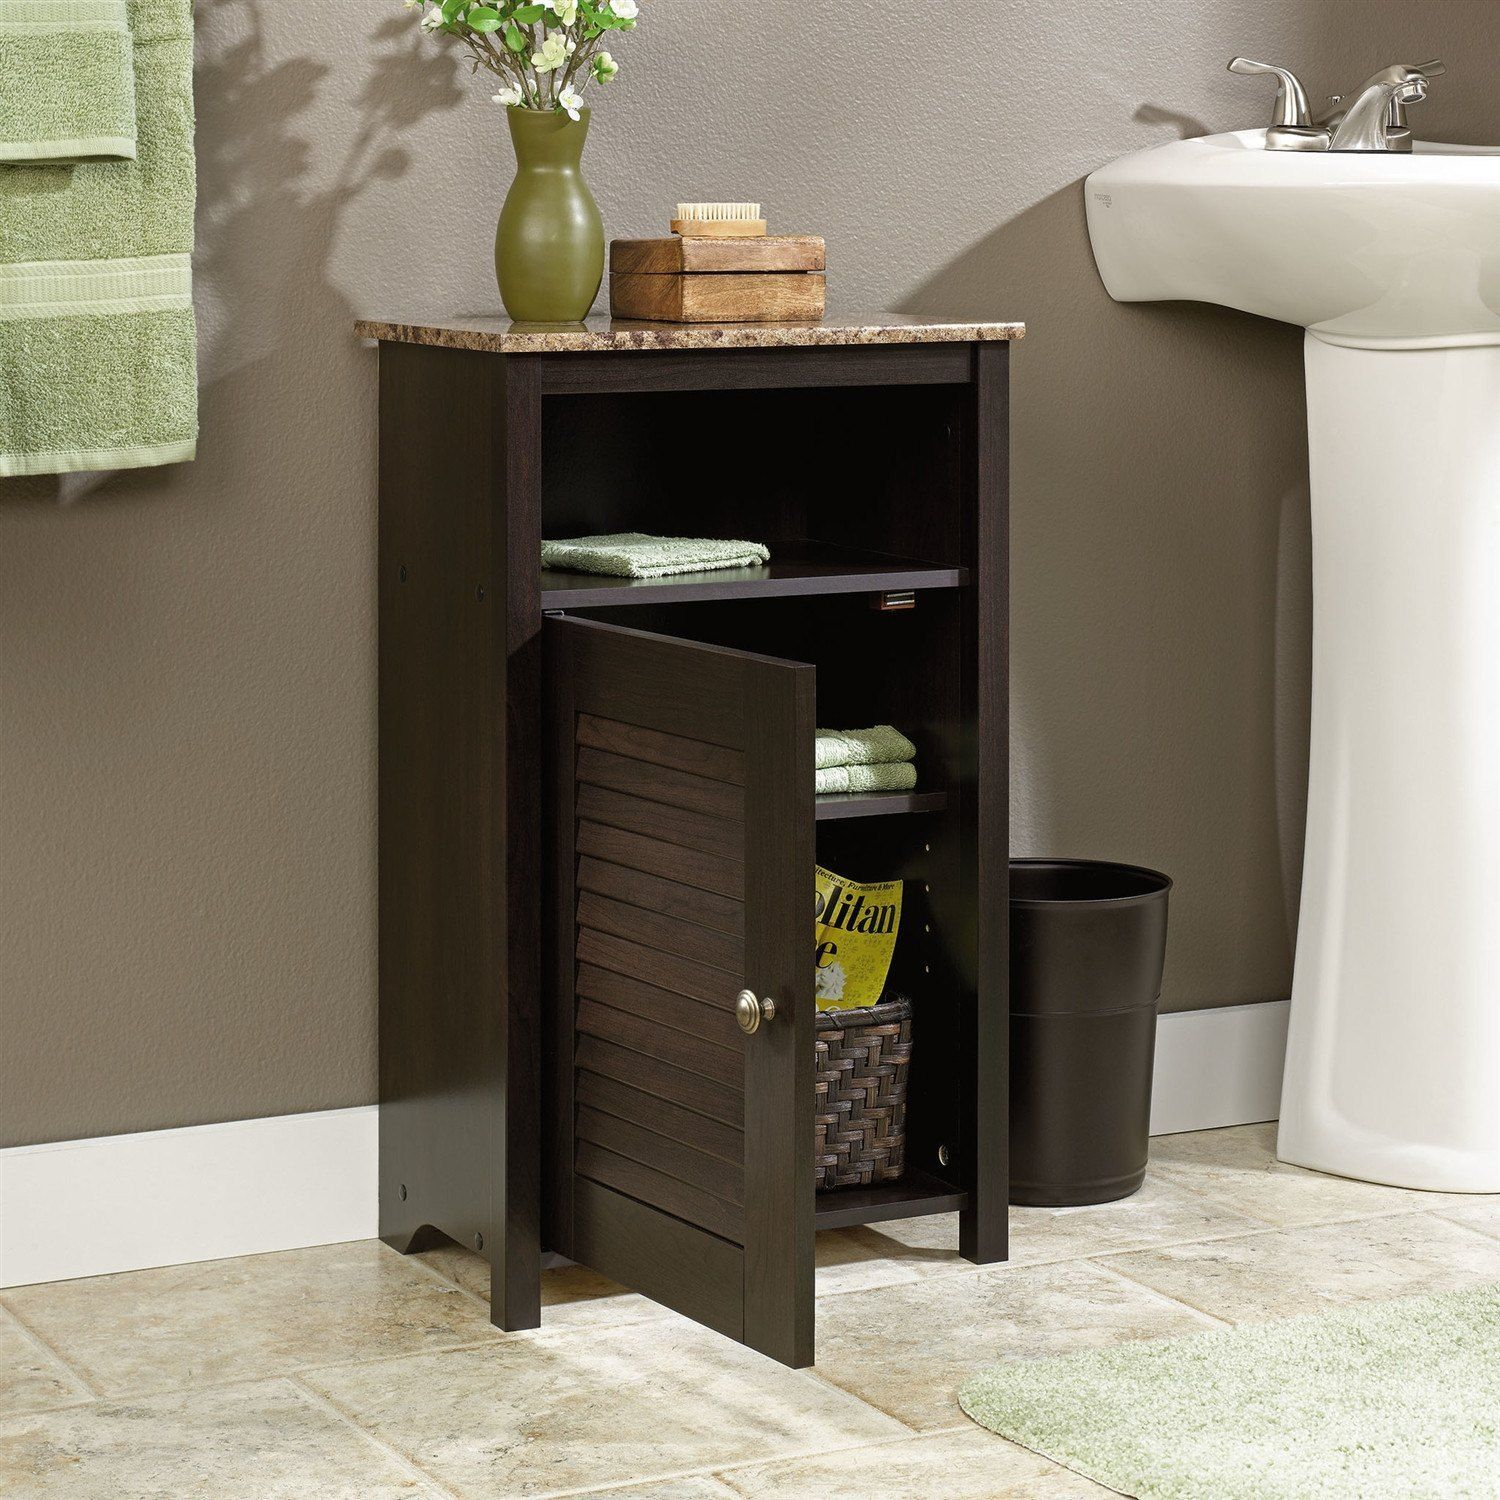 Bathroom Floor Cabinet with Shelf and Faux Granite Top | Bathroom ...